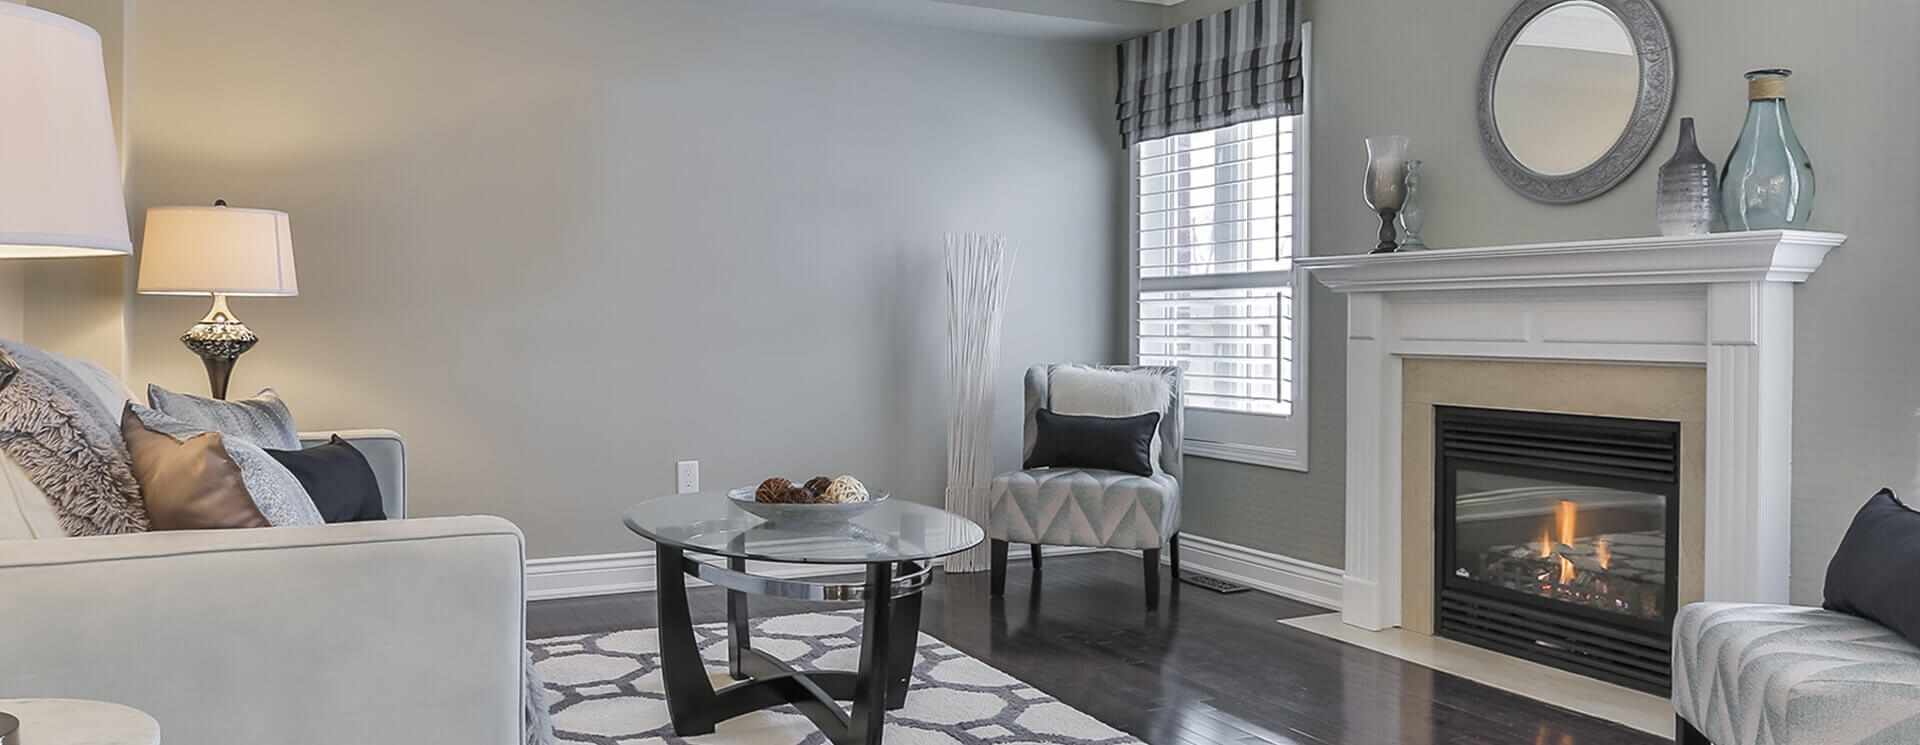 Keswickcountry bedroom paint color schemes designer office Living Room Paint Monika Hibbs Commercial Residential Painting Services Five Star Painting